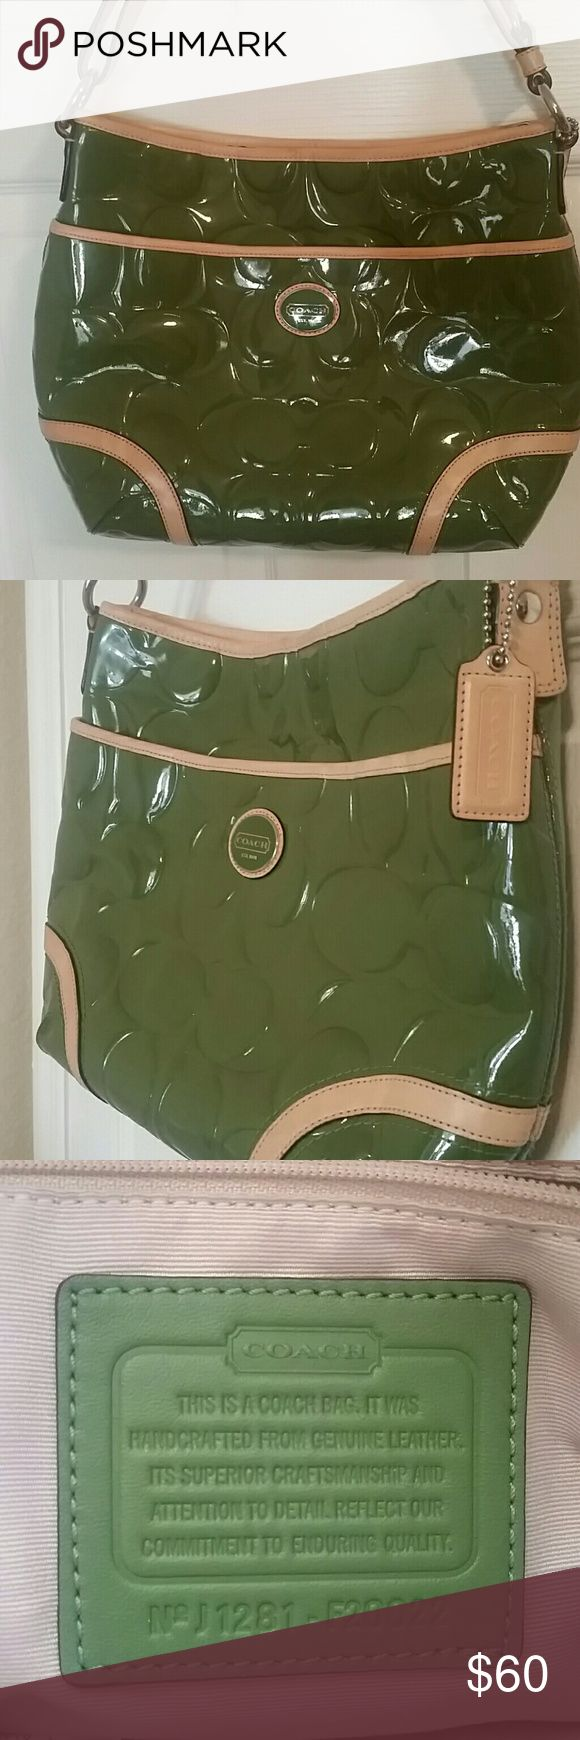 COACH green shoulder bag Almost new, great condition, medium size Coach Bags Shoulder Bags